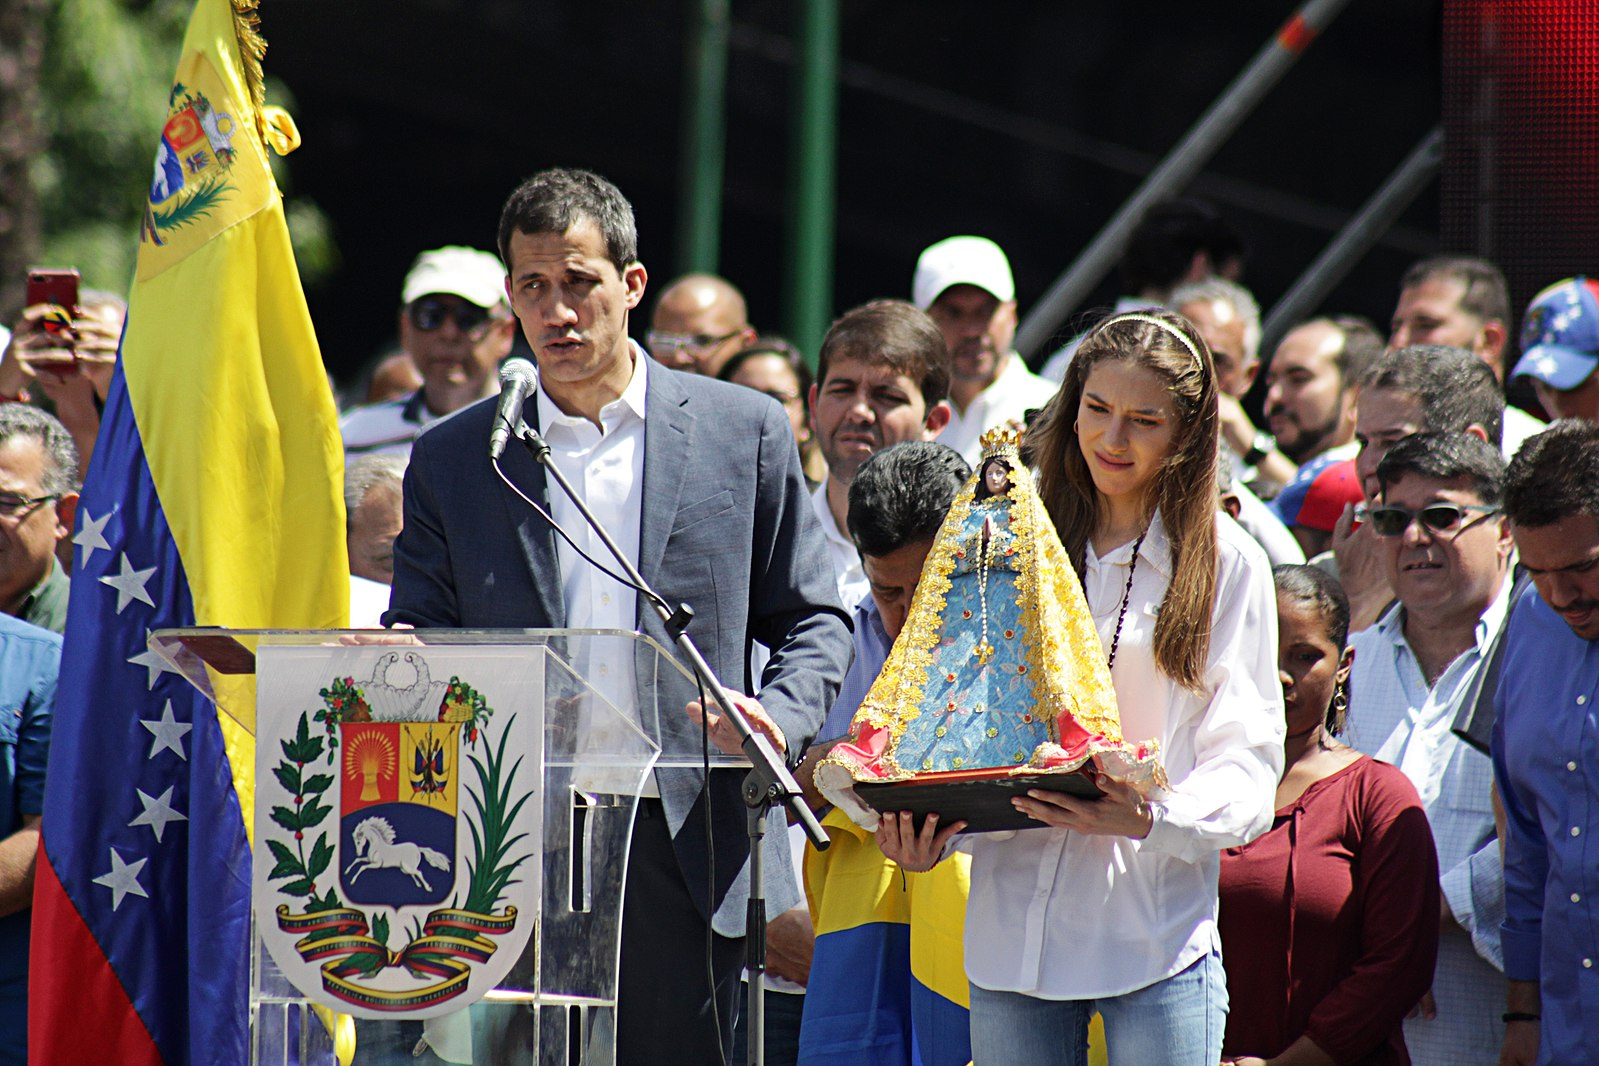 Self-declared interim President of Venezuela Juan Guaidó speaks at an anti-Maduro protest in Caracas in February. (Wikimedia Commons)